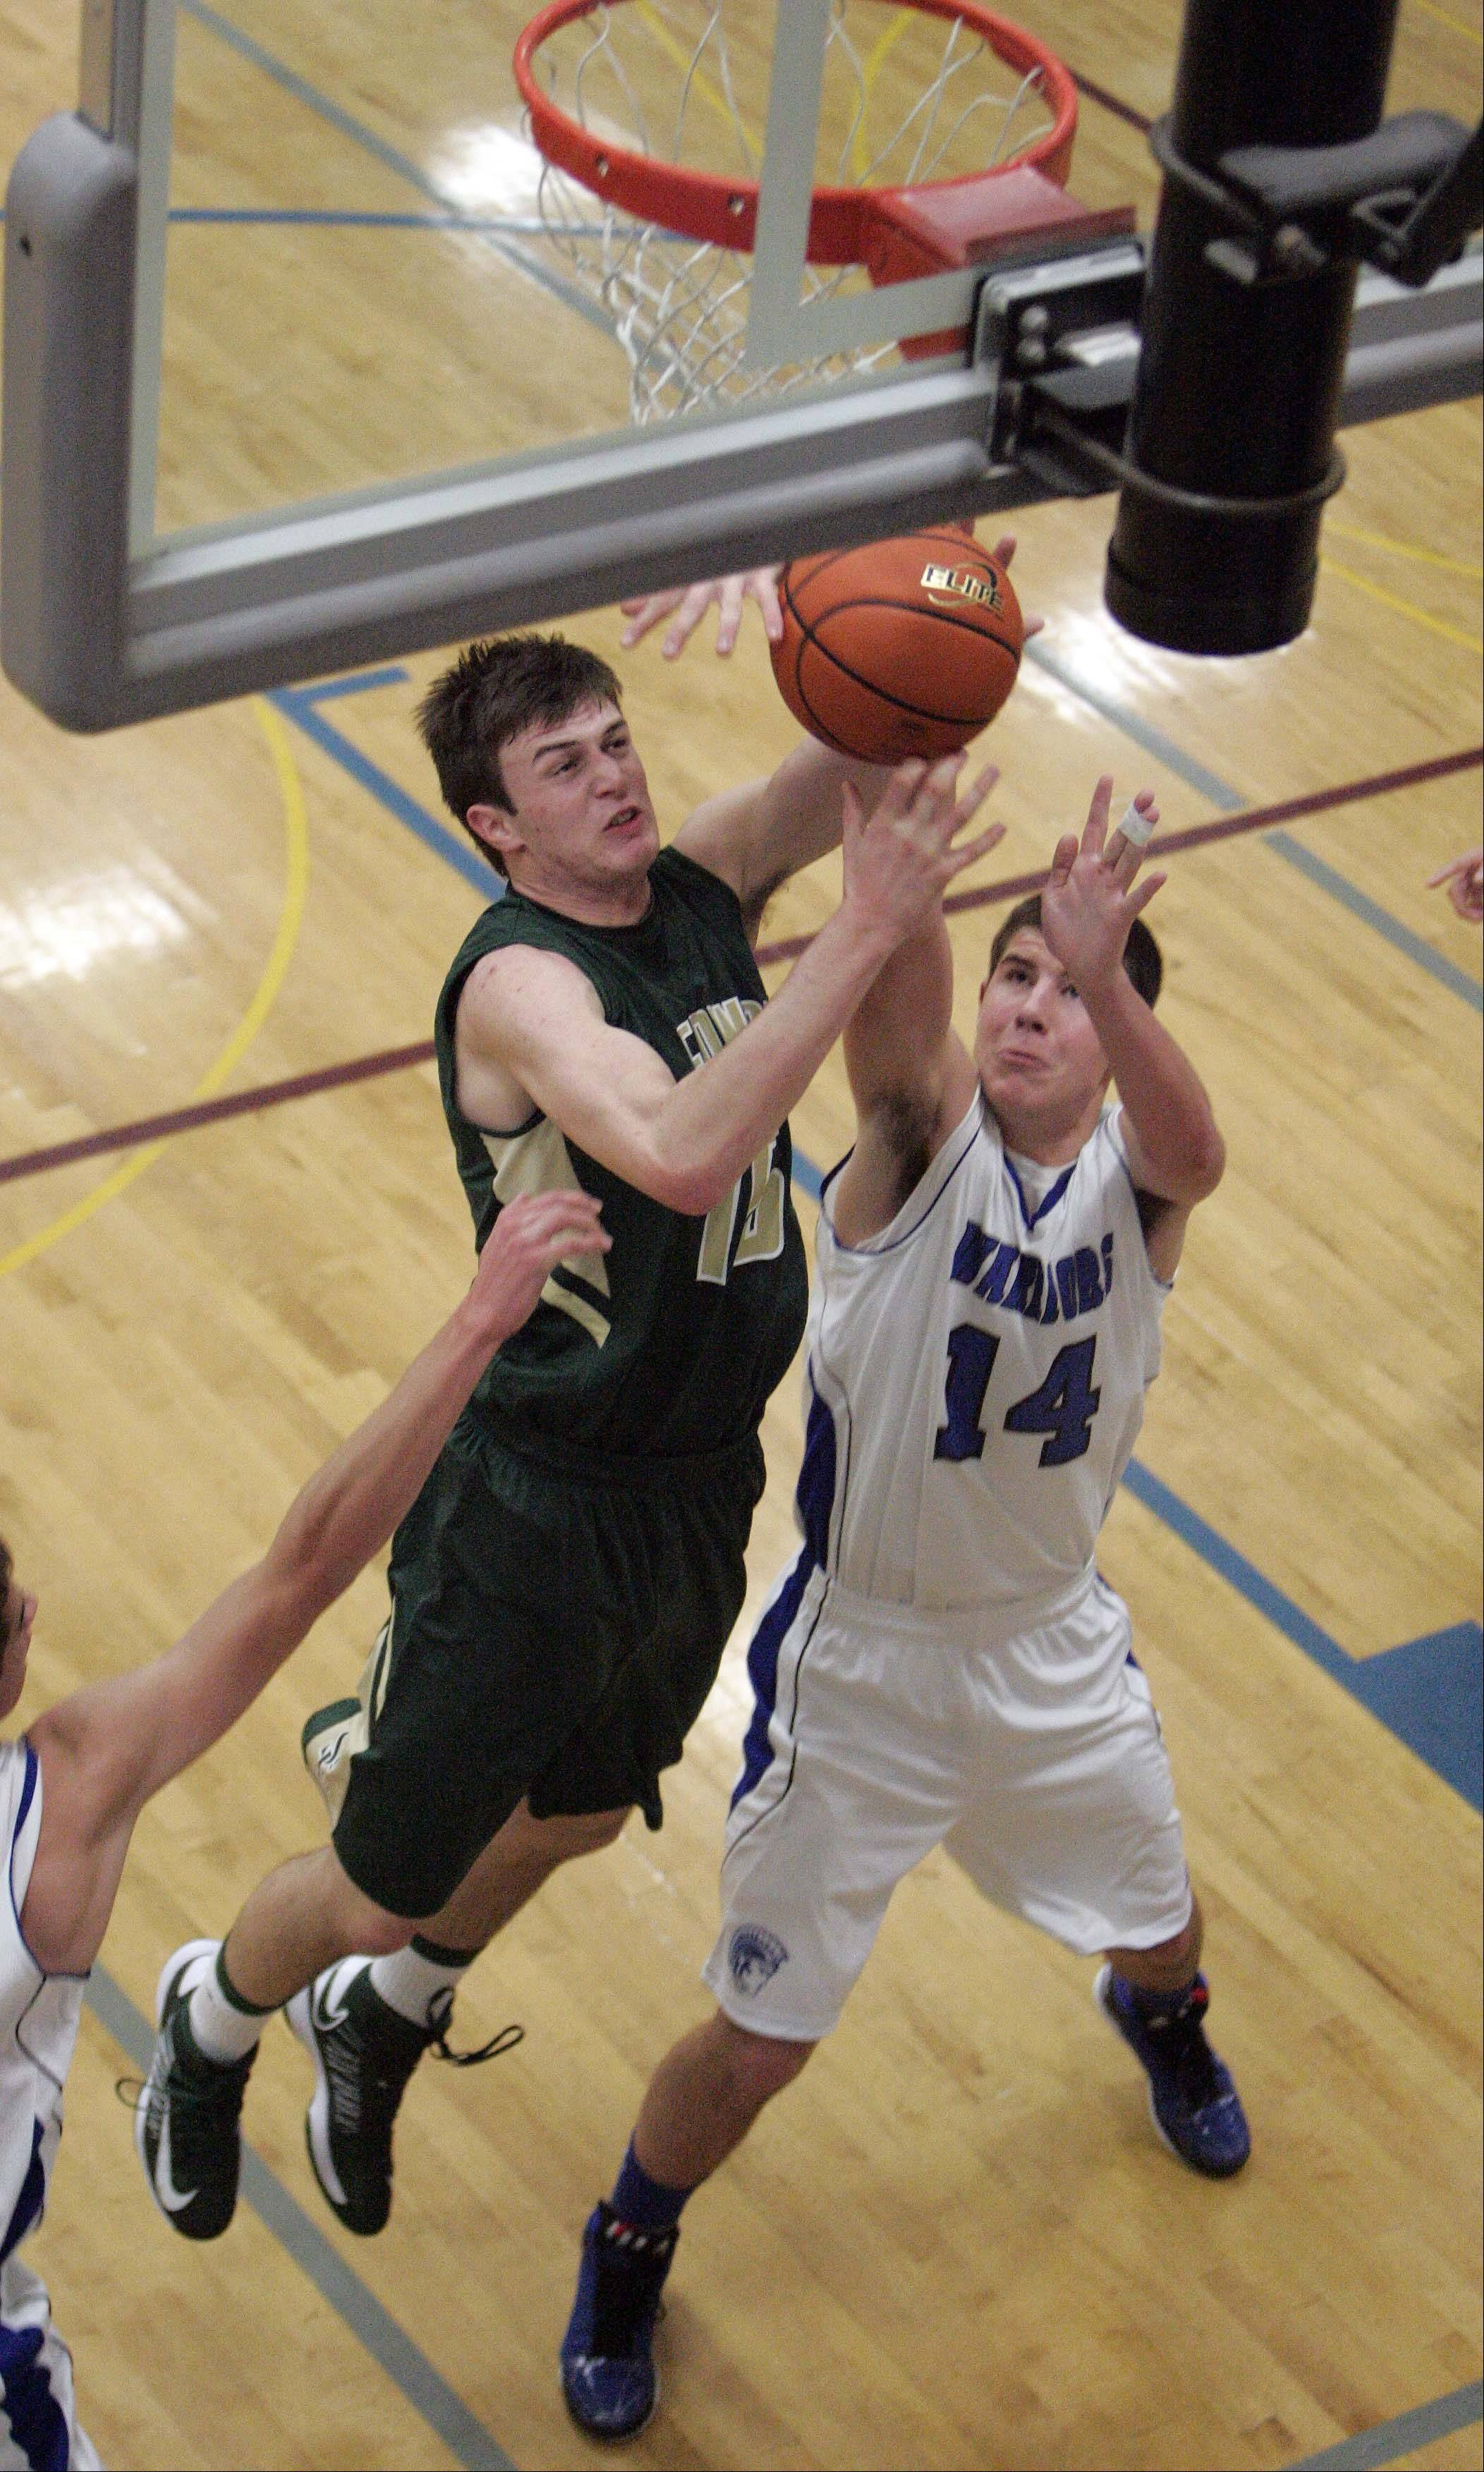 St. Edward forward Nick Duffy (15) battles at the hoop for a rebound with Westminster Christian' s Sam Carani (14) during the 6th Annual Warrior Thanksgiving Basketball Classic in Elgin Friday November 23, 2012.